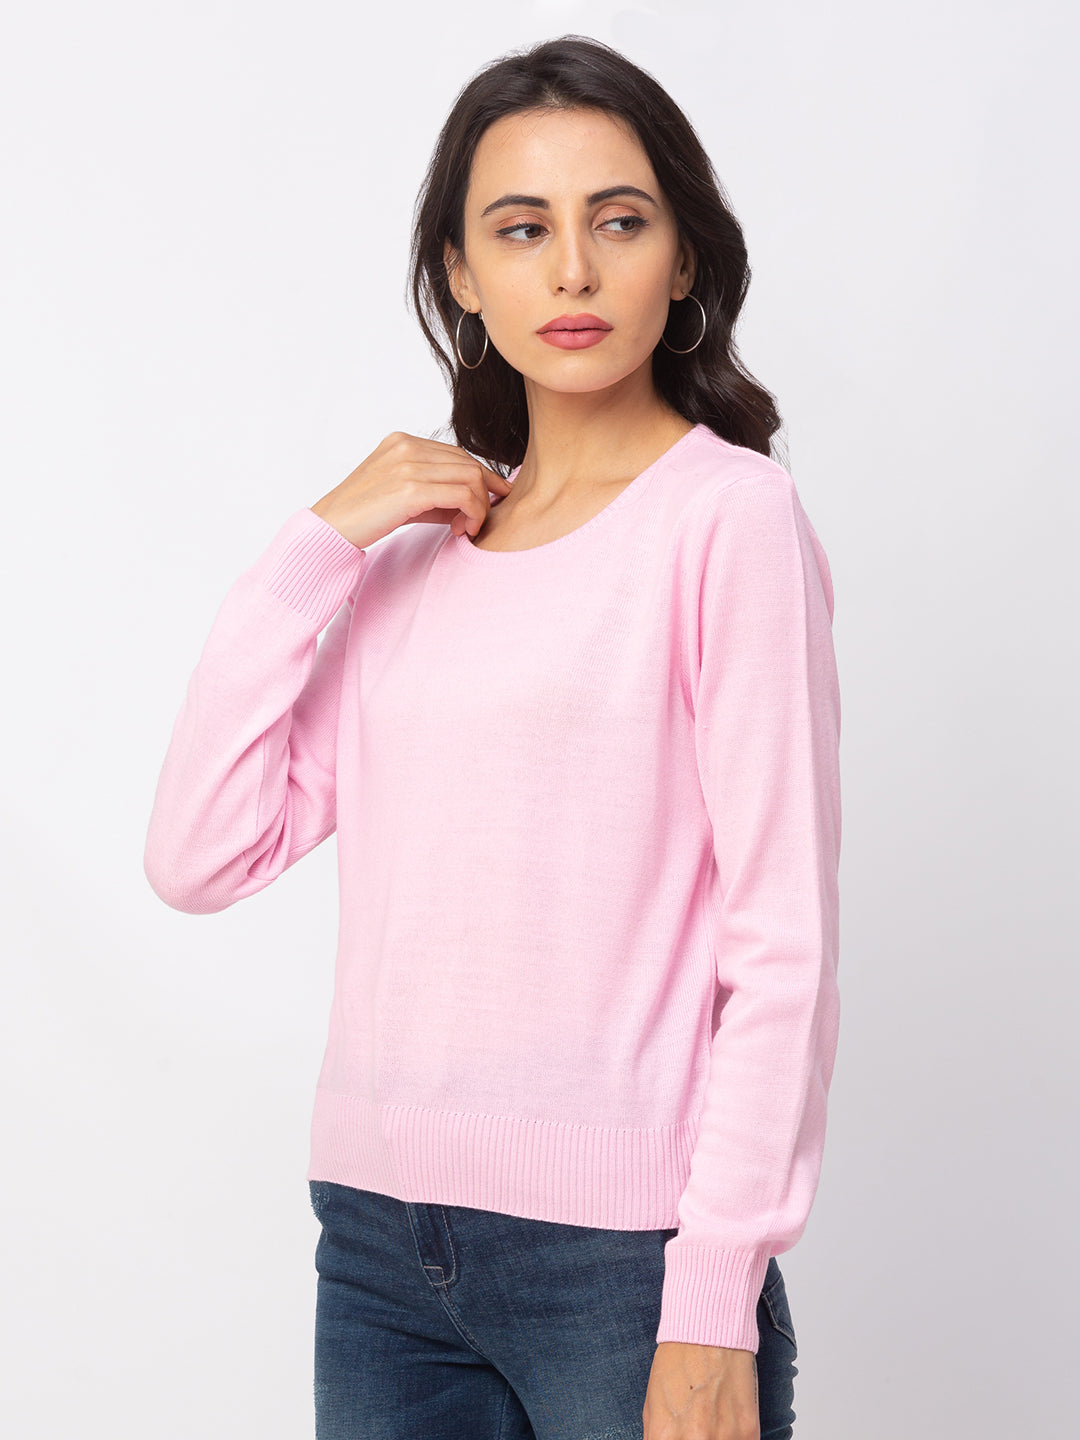 Globus Pink Solid Sweater-4